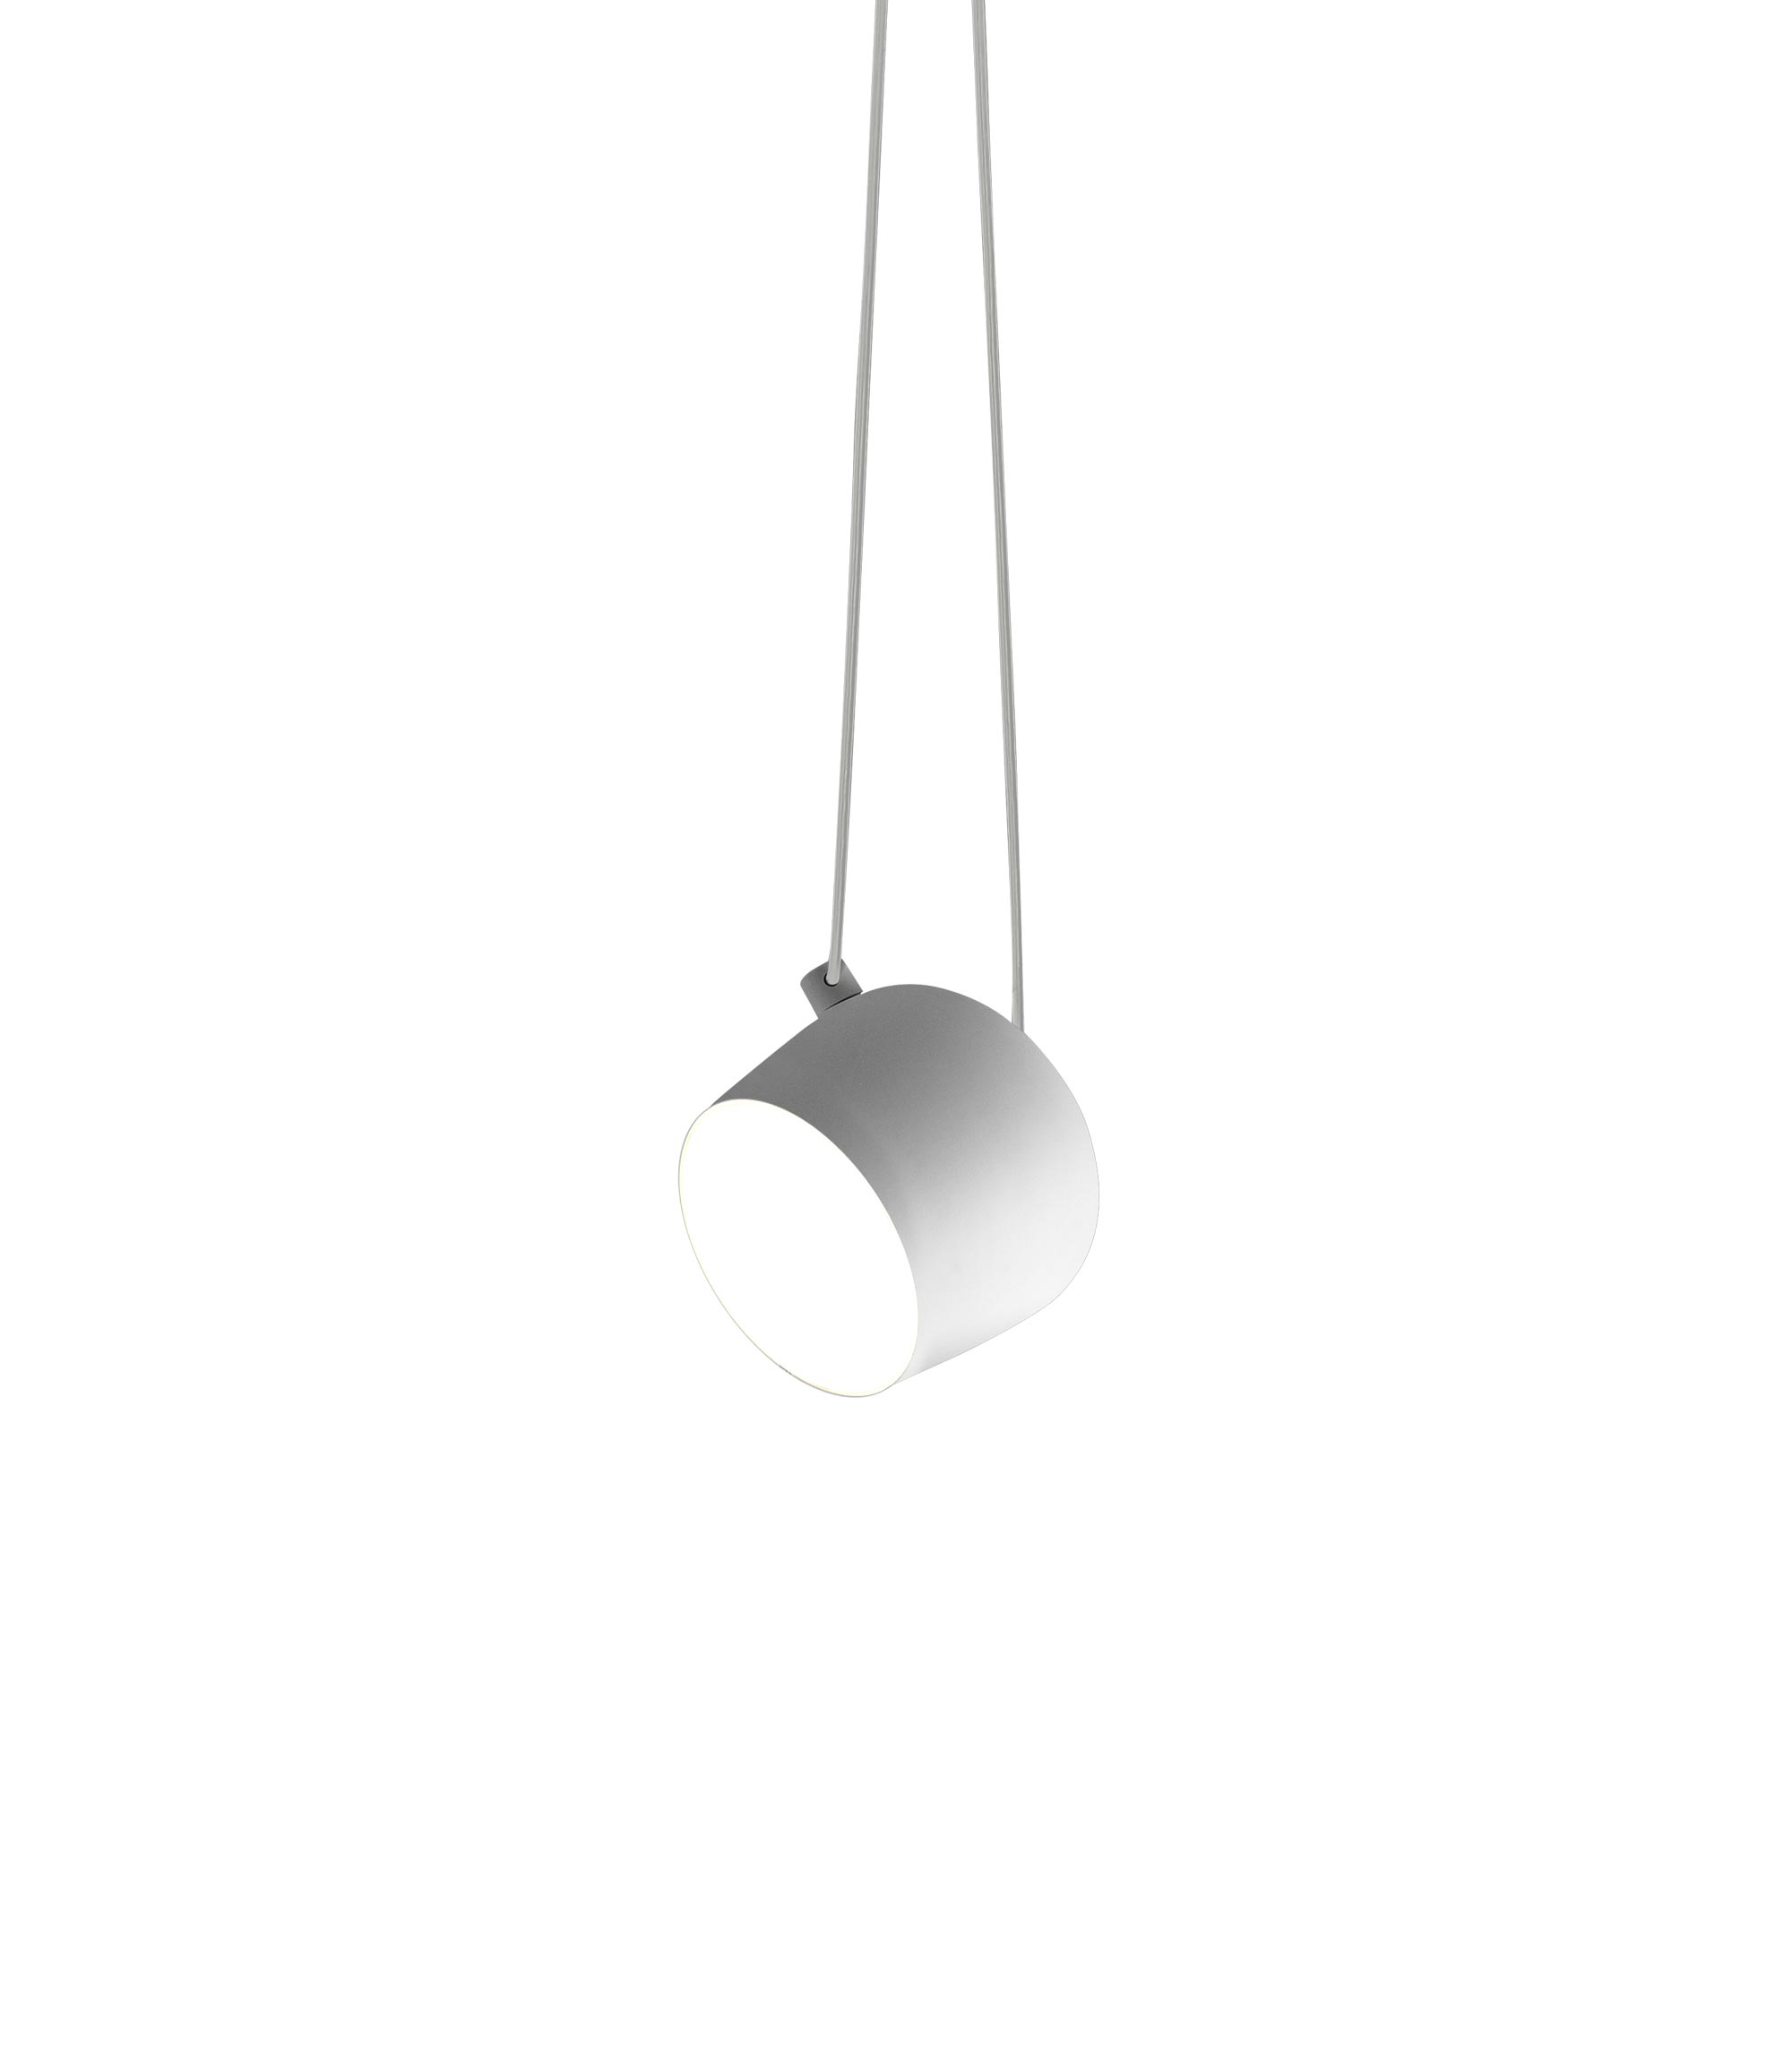 Aim suspension bouroullec flos F0090009 product still life big